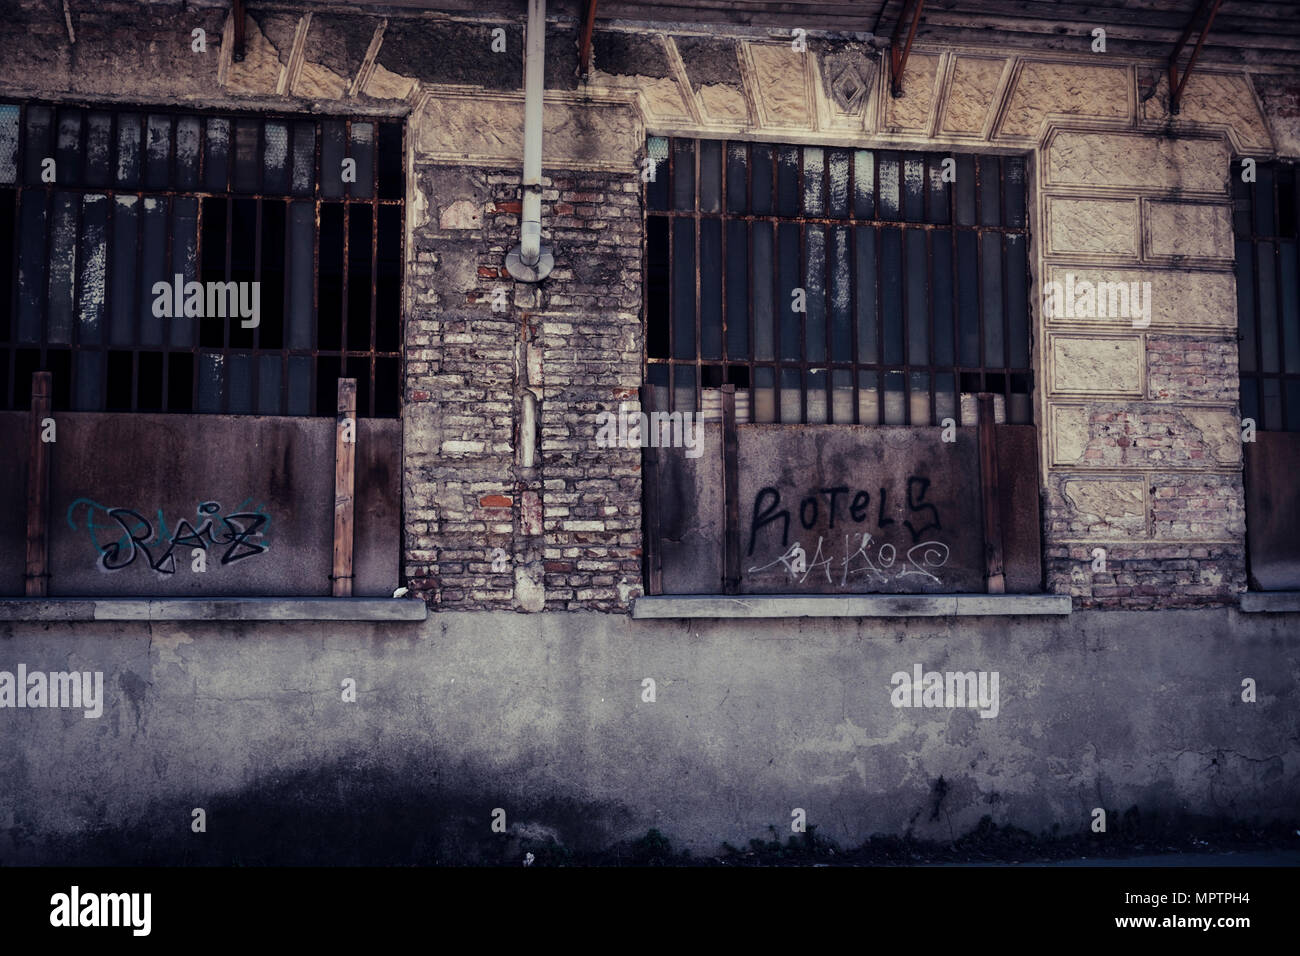 nobody in abandoned place in town. retro dark horror filter and concept. zombie movie style for scary scene. - Stock Image